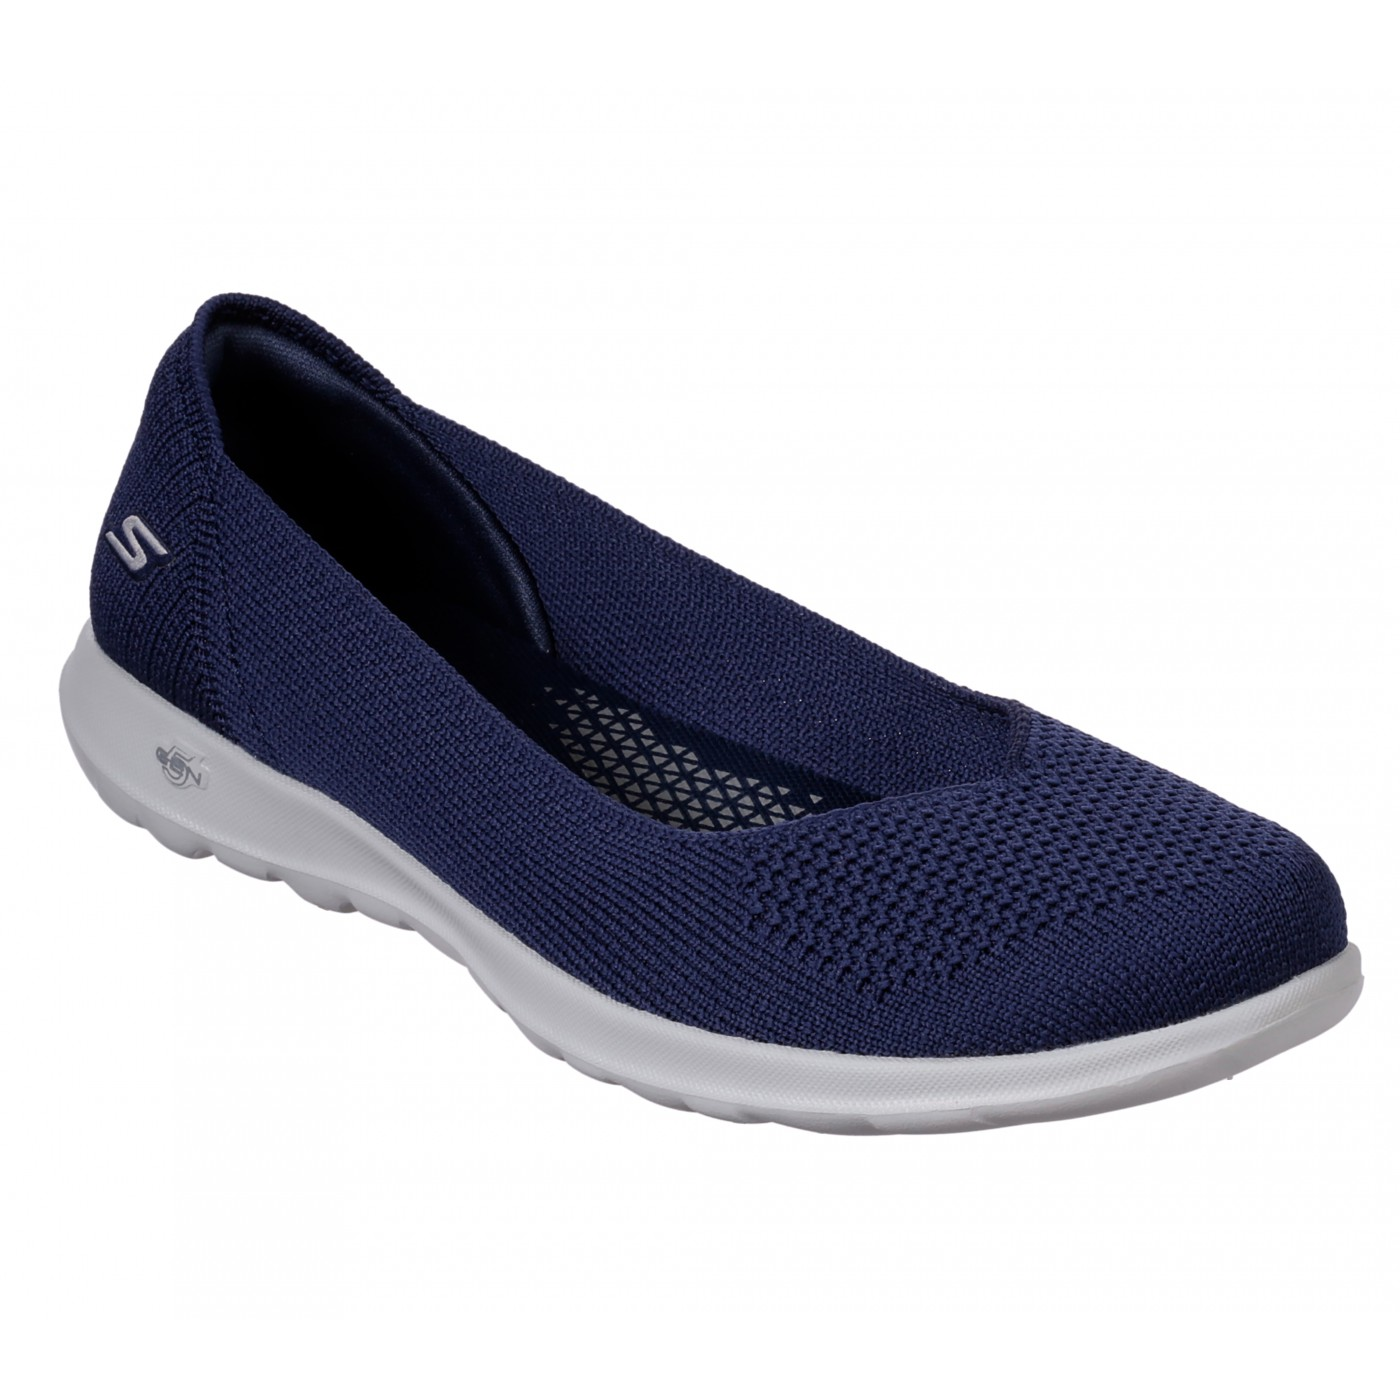 Ballerines Skechers femme ultra souple et confortable ...